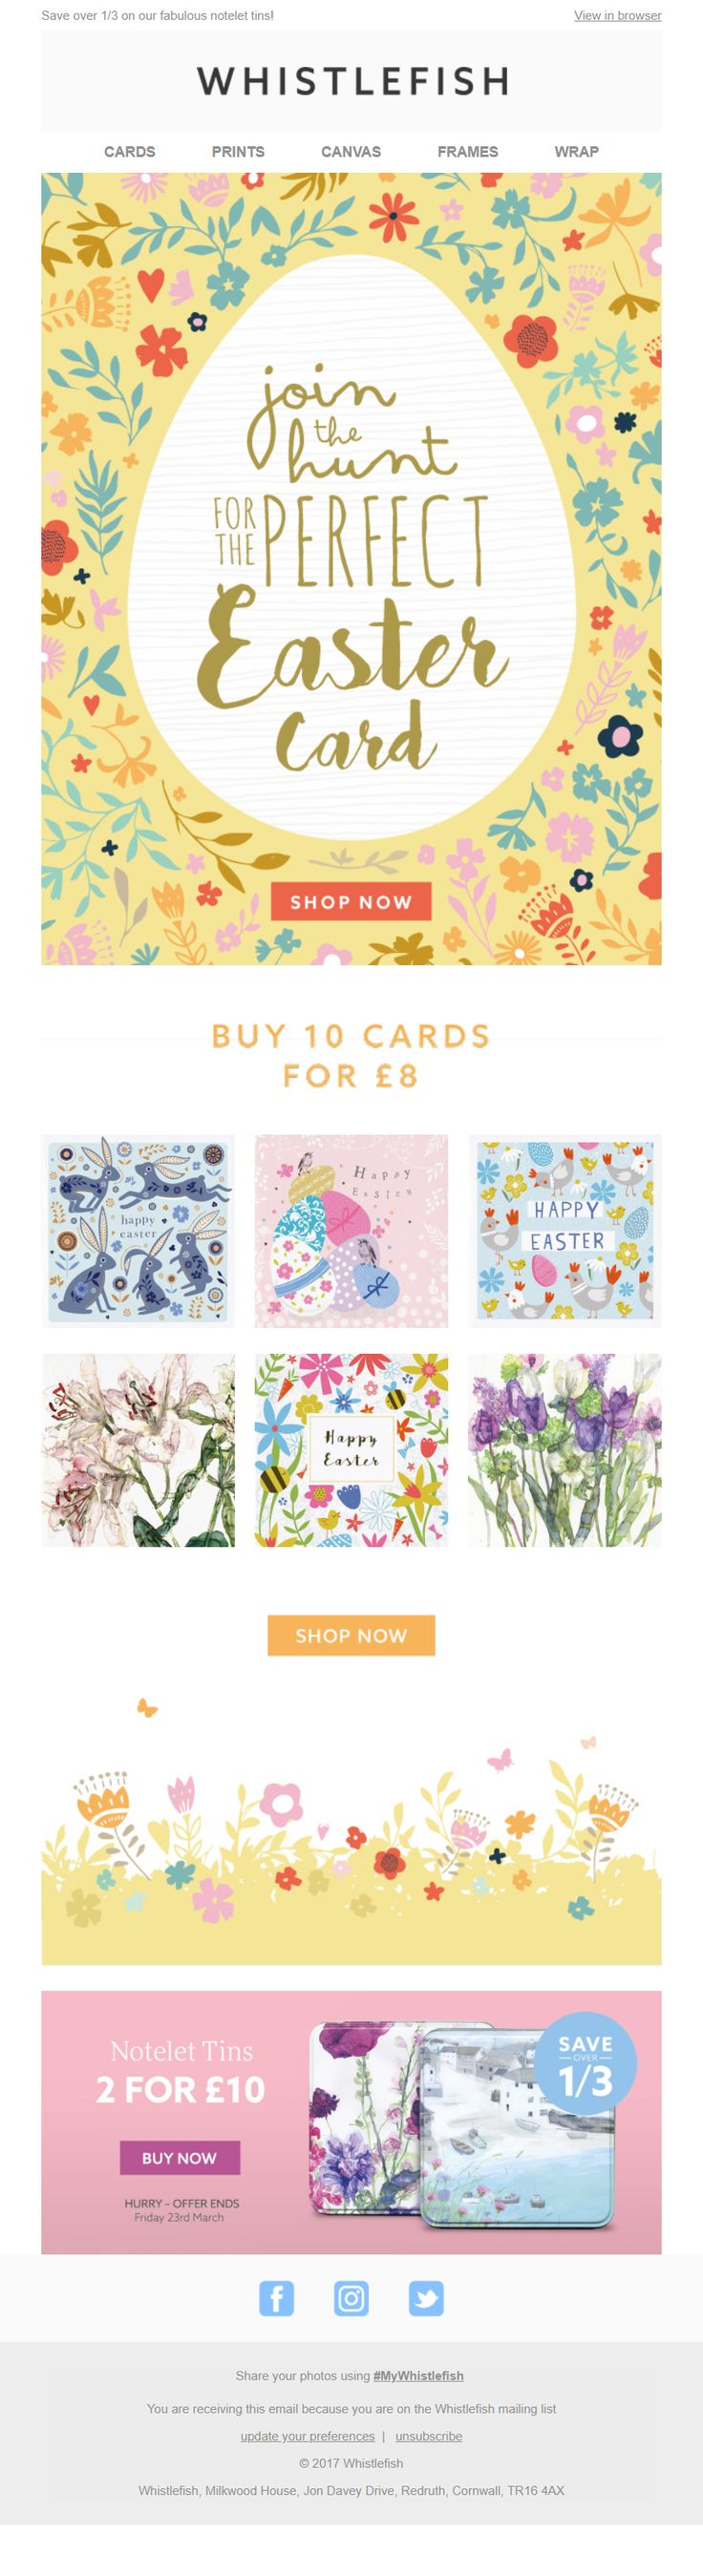 123 best easter emails images on pinterest easter email from whistlefish emailmarketing email marketing easter gifts retail negle Gallery